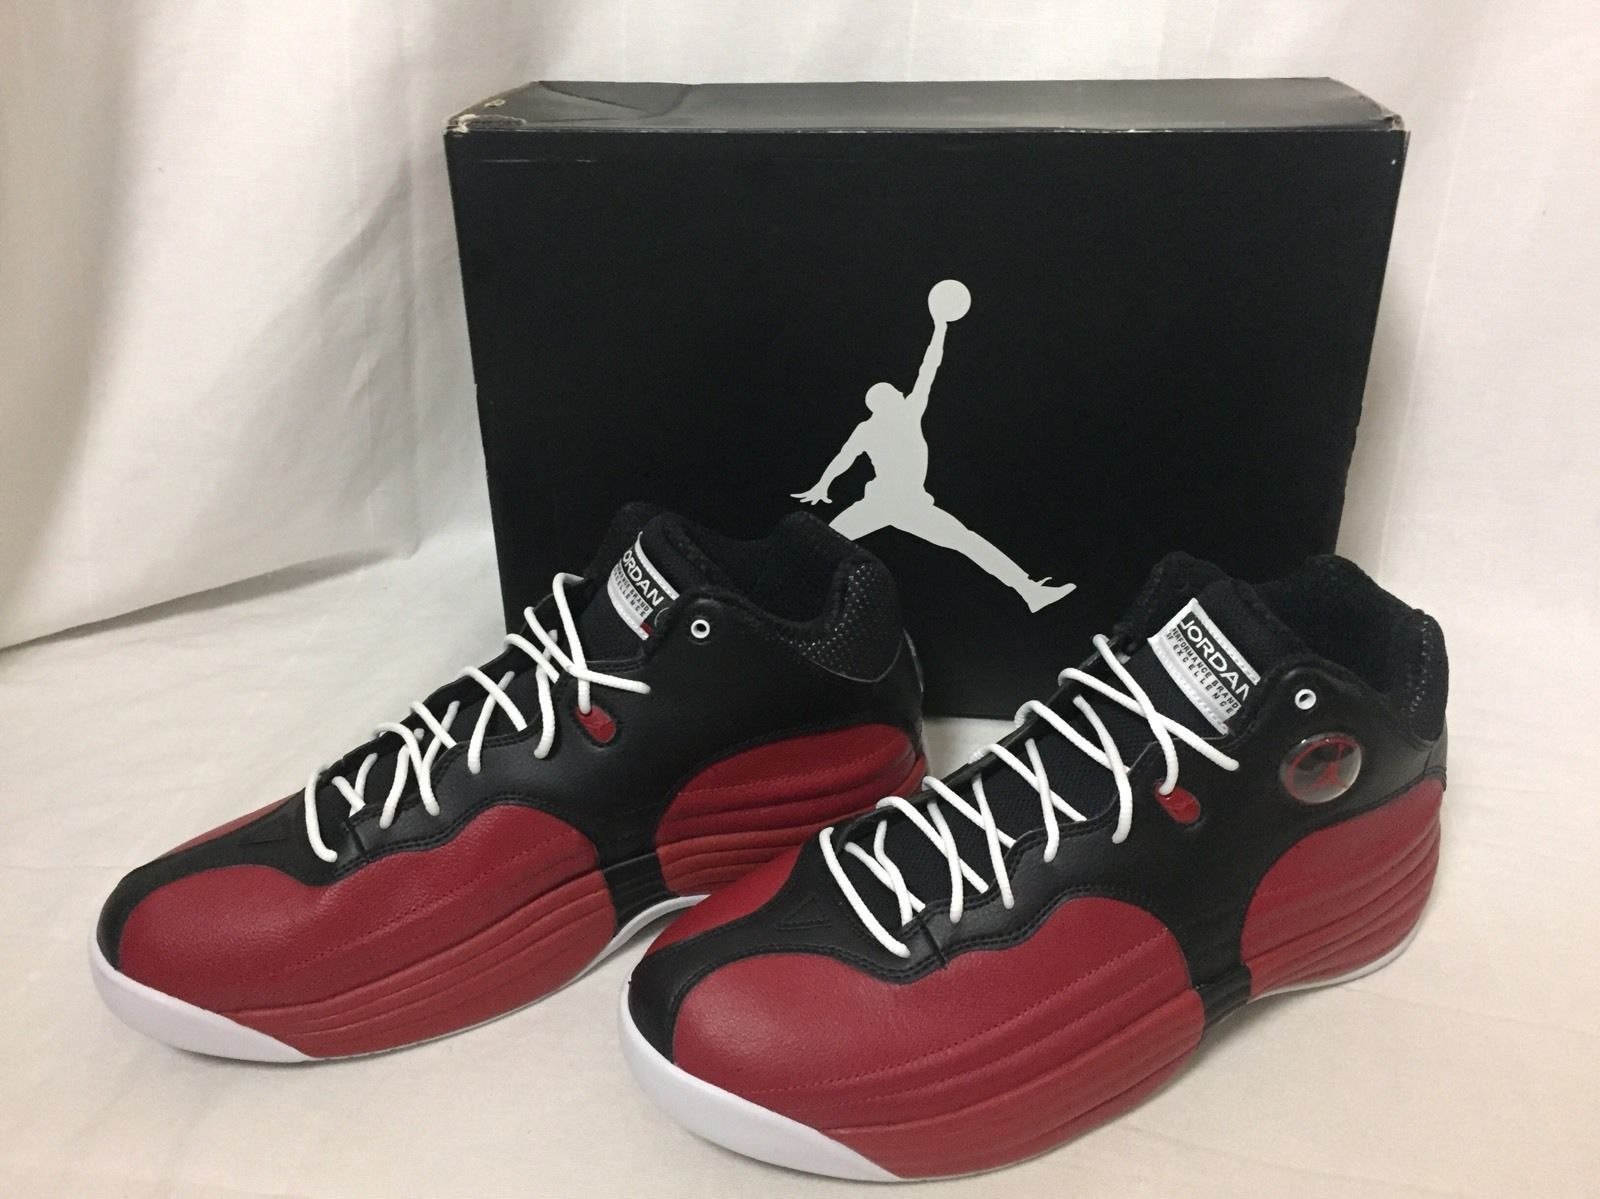 huge discount a61fb 13651 New Nike Air Jordan Jumpman Team 1 Basketball Shoes Sz 11.5 Red Black  644938 004